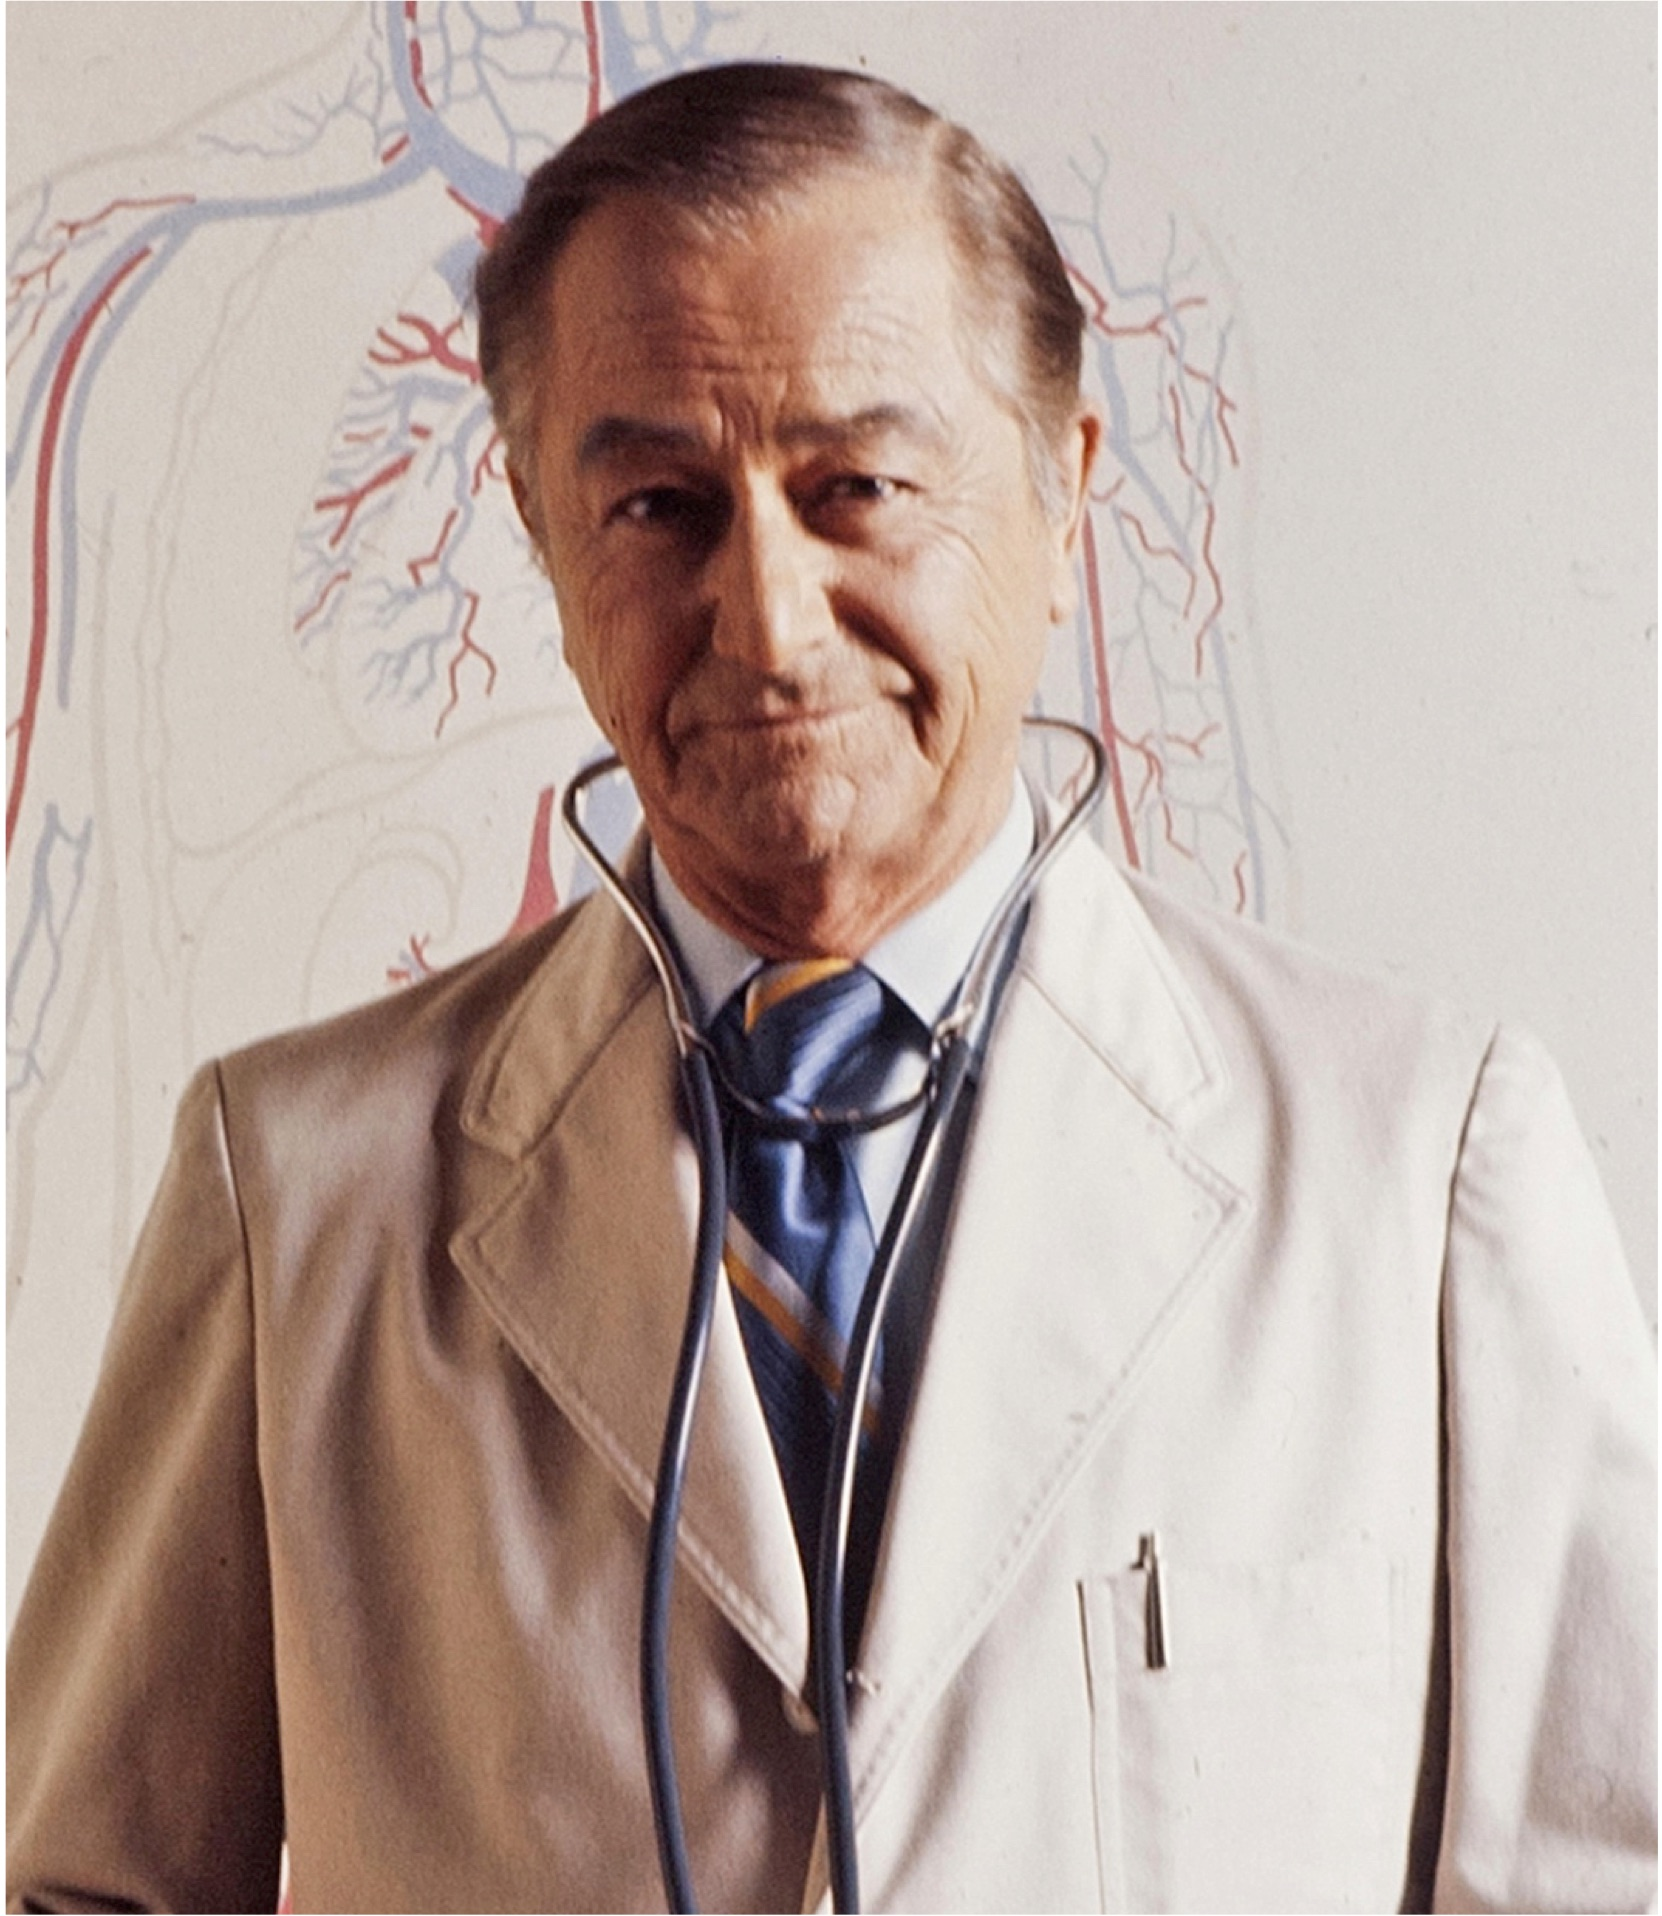 Marcus Welby, M.D. (actor Robert Young)